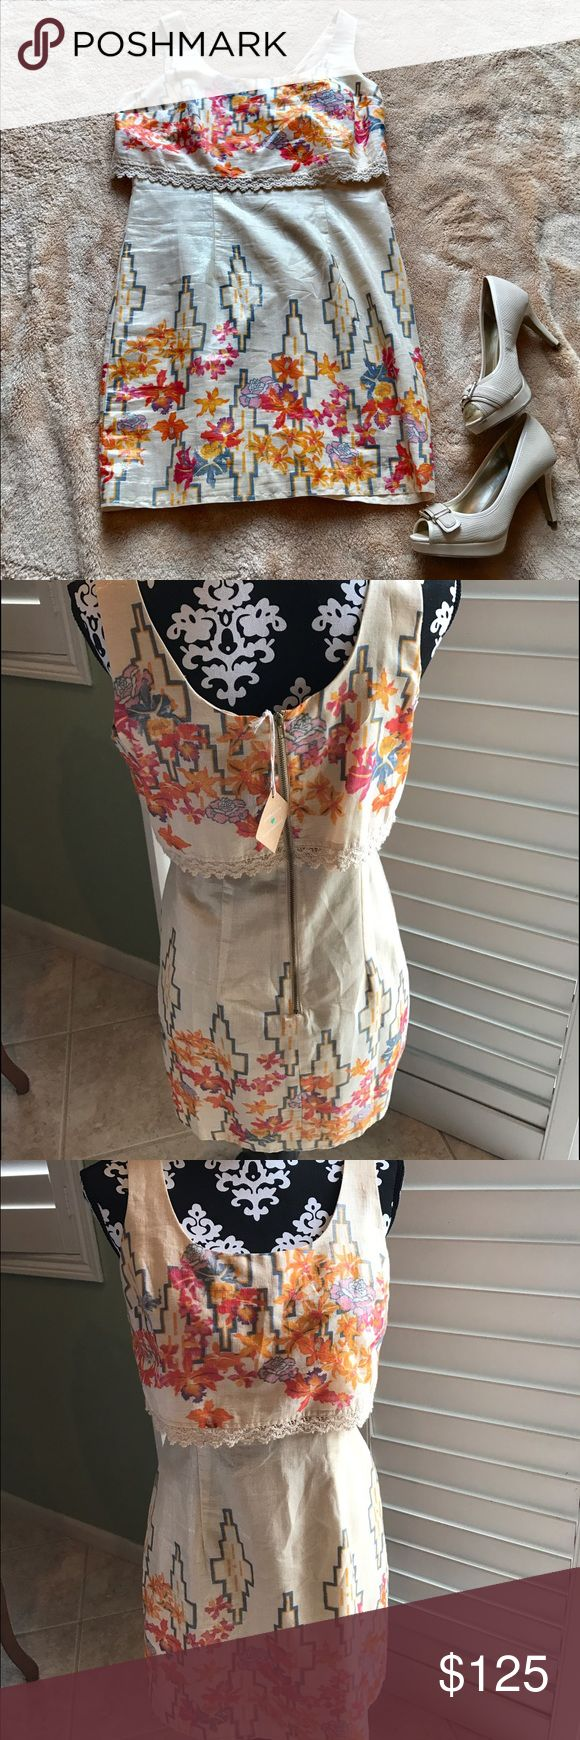 Free People Gold Metallic Aztec Floral Dress NWT Brand new never worn.  Free People Gold Metallic Aztec Floral Shift Dress Boho Hippie dress perfect for spring can be dressed up or down perfect for any occasion Free People Dresses Midi